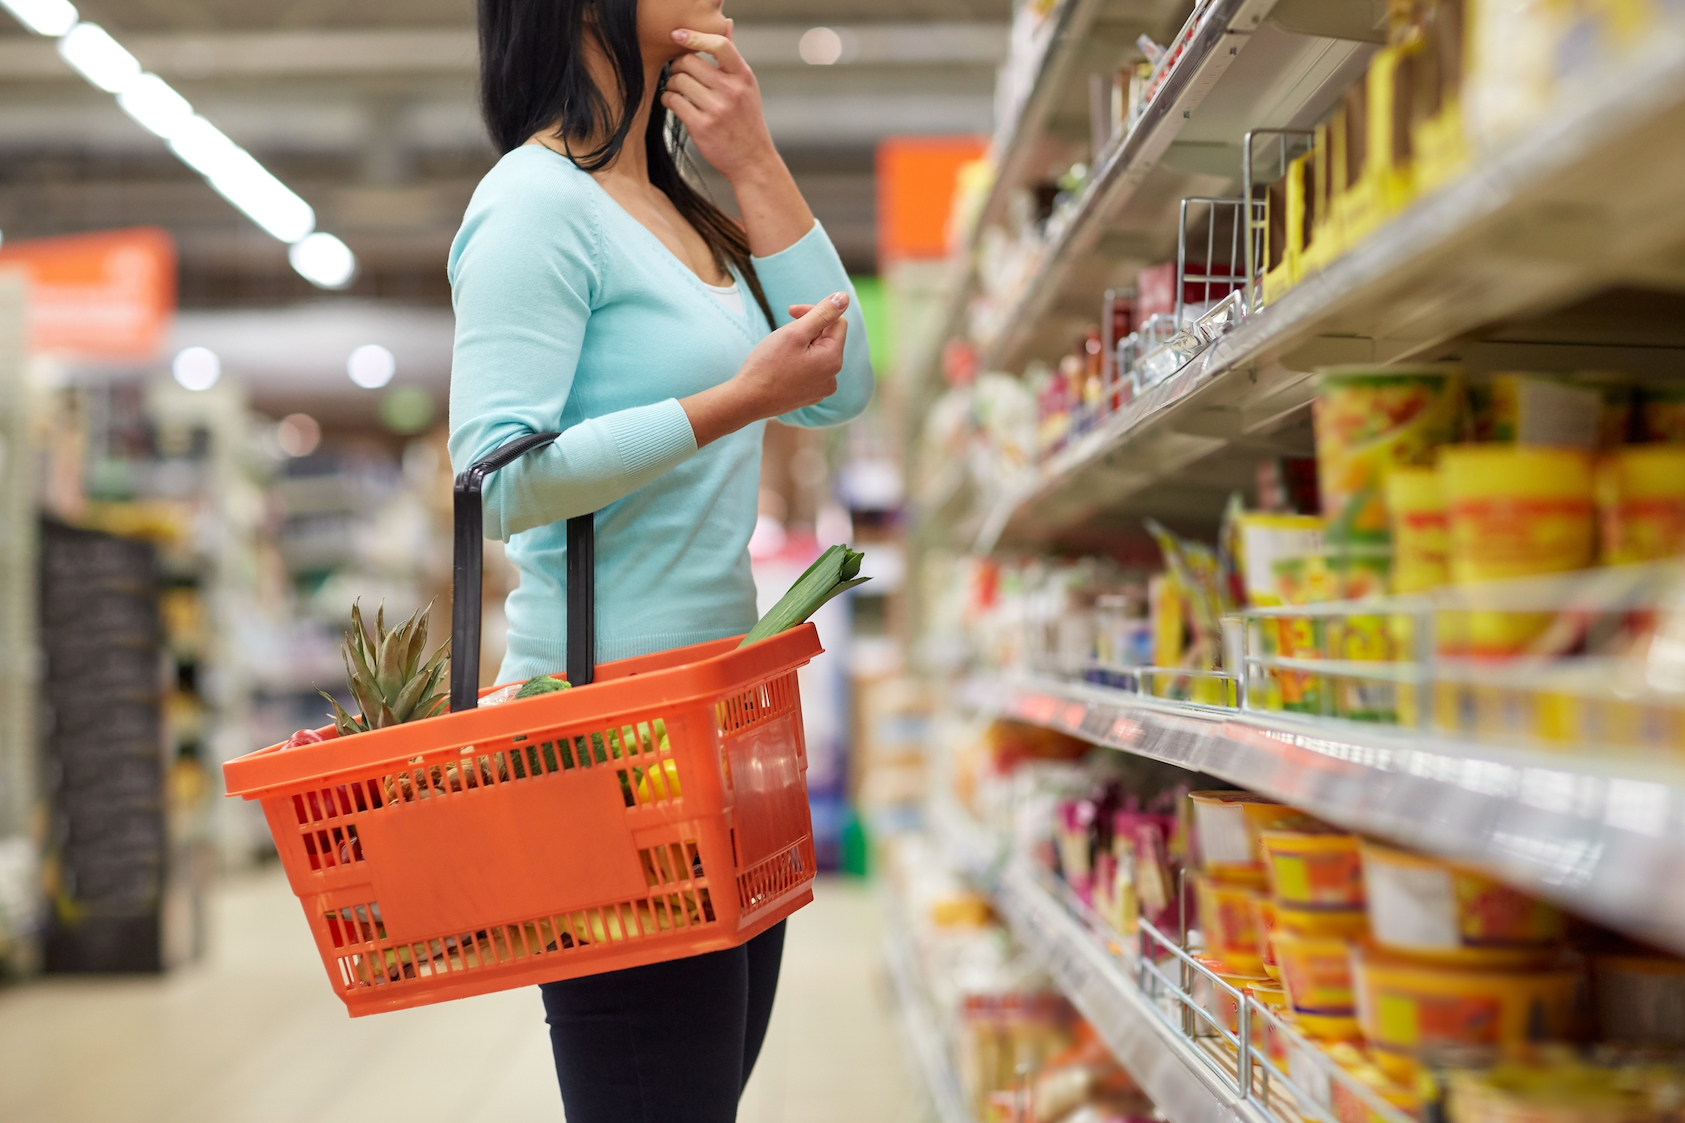 Using a strategy known as silent reformulation, supermarkets can lower calorie content without alerting customers.